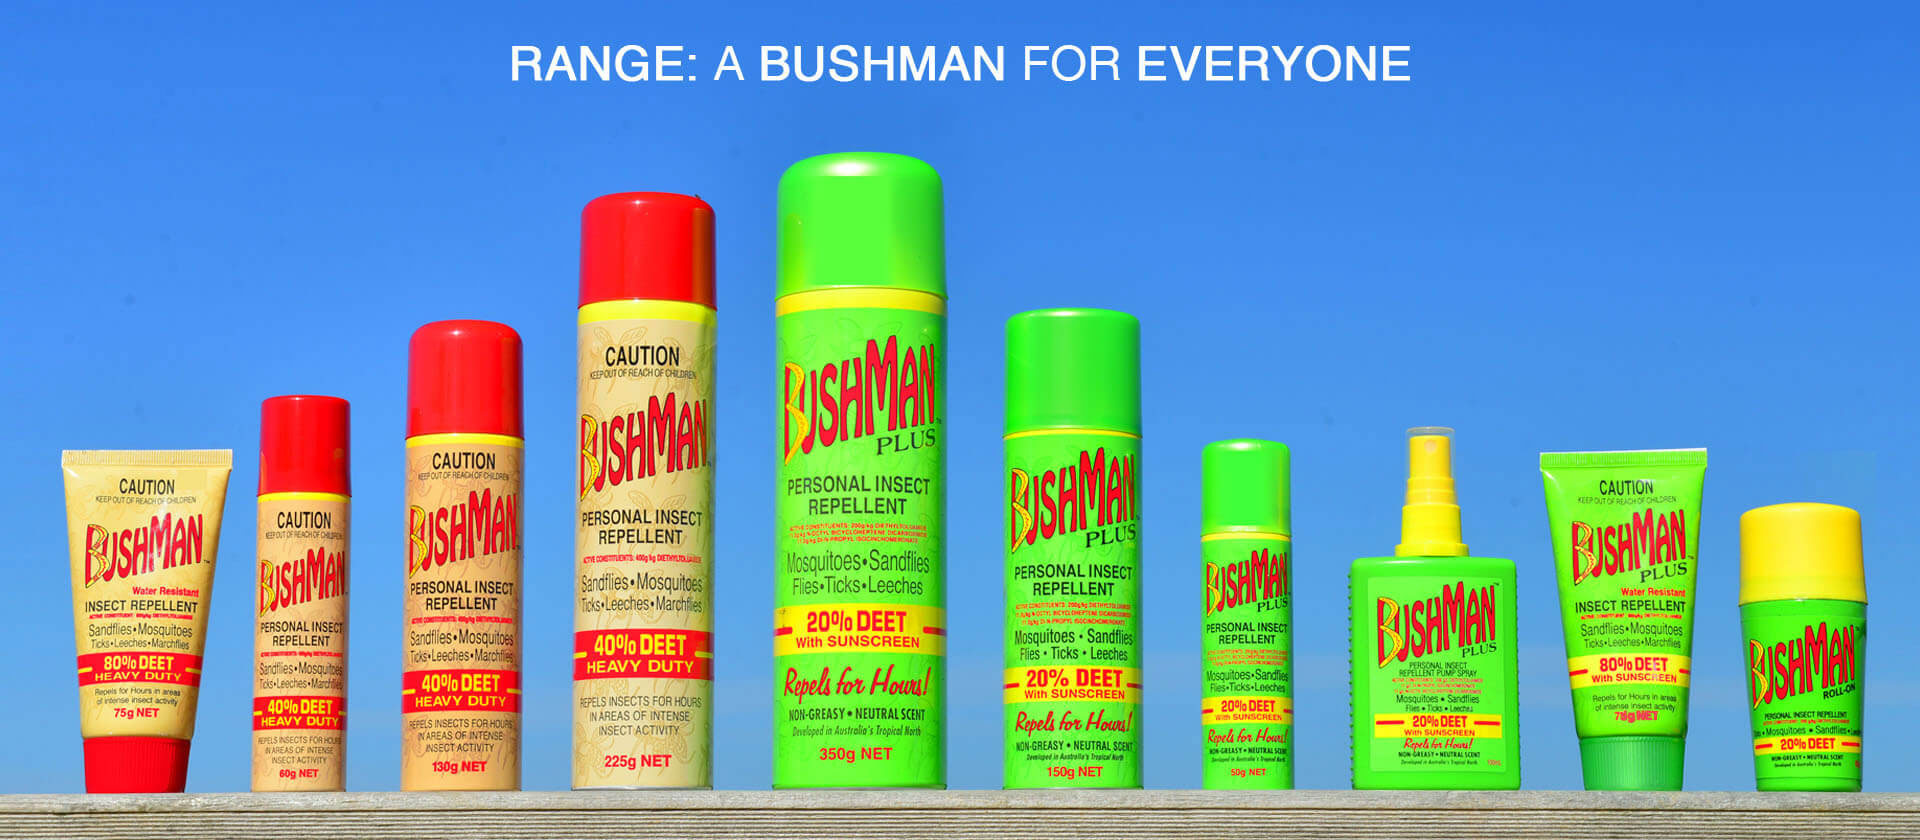 All bushman products inline on a bench banner image